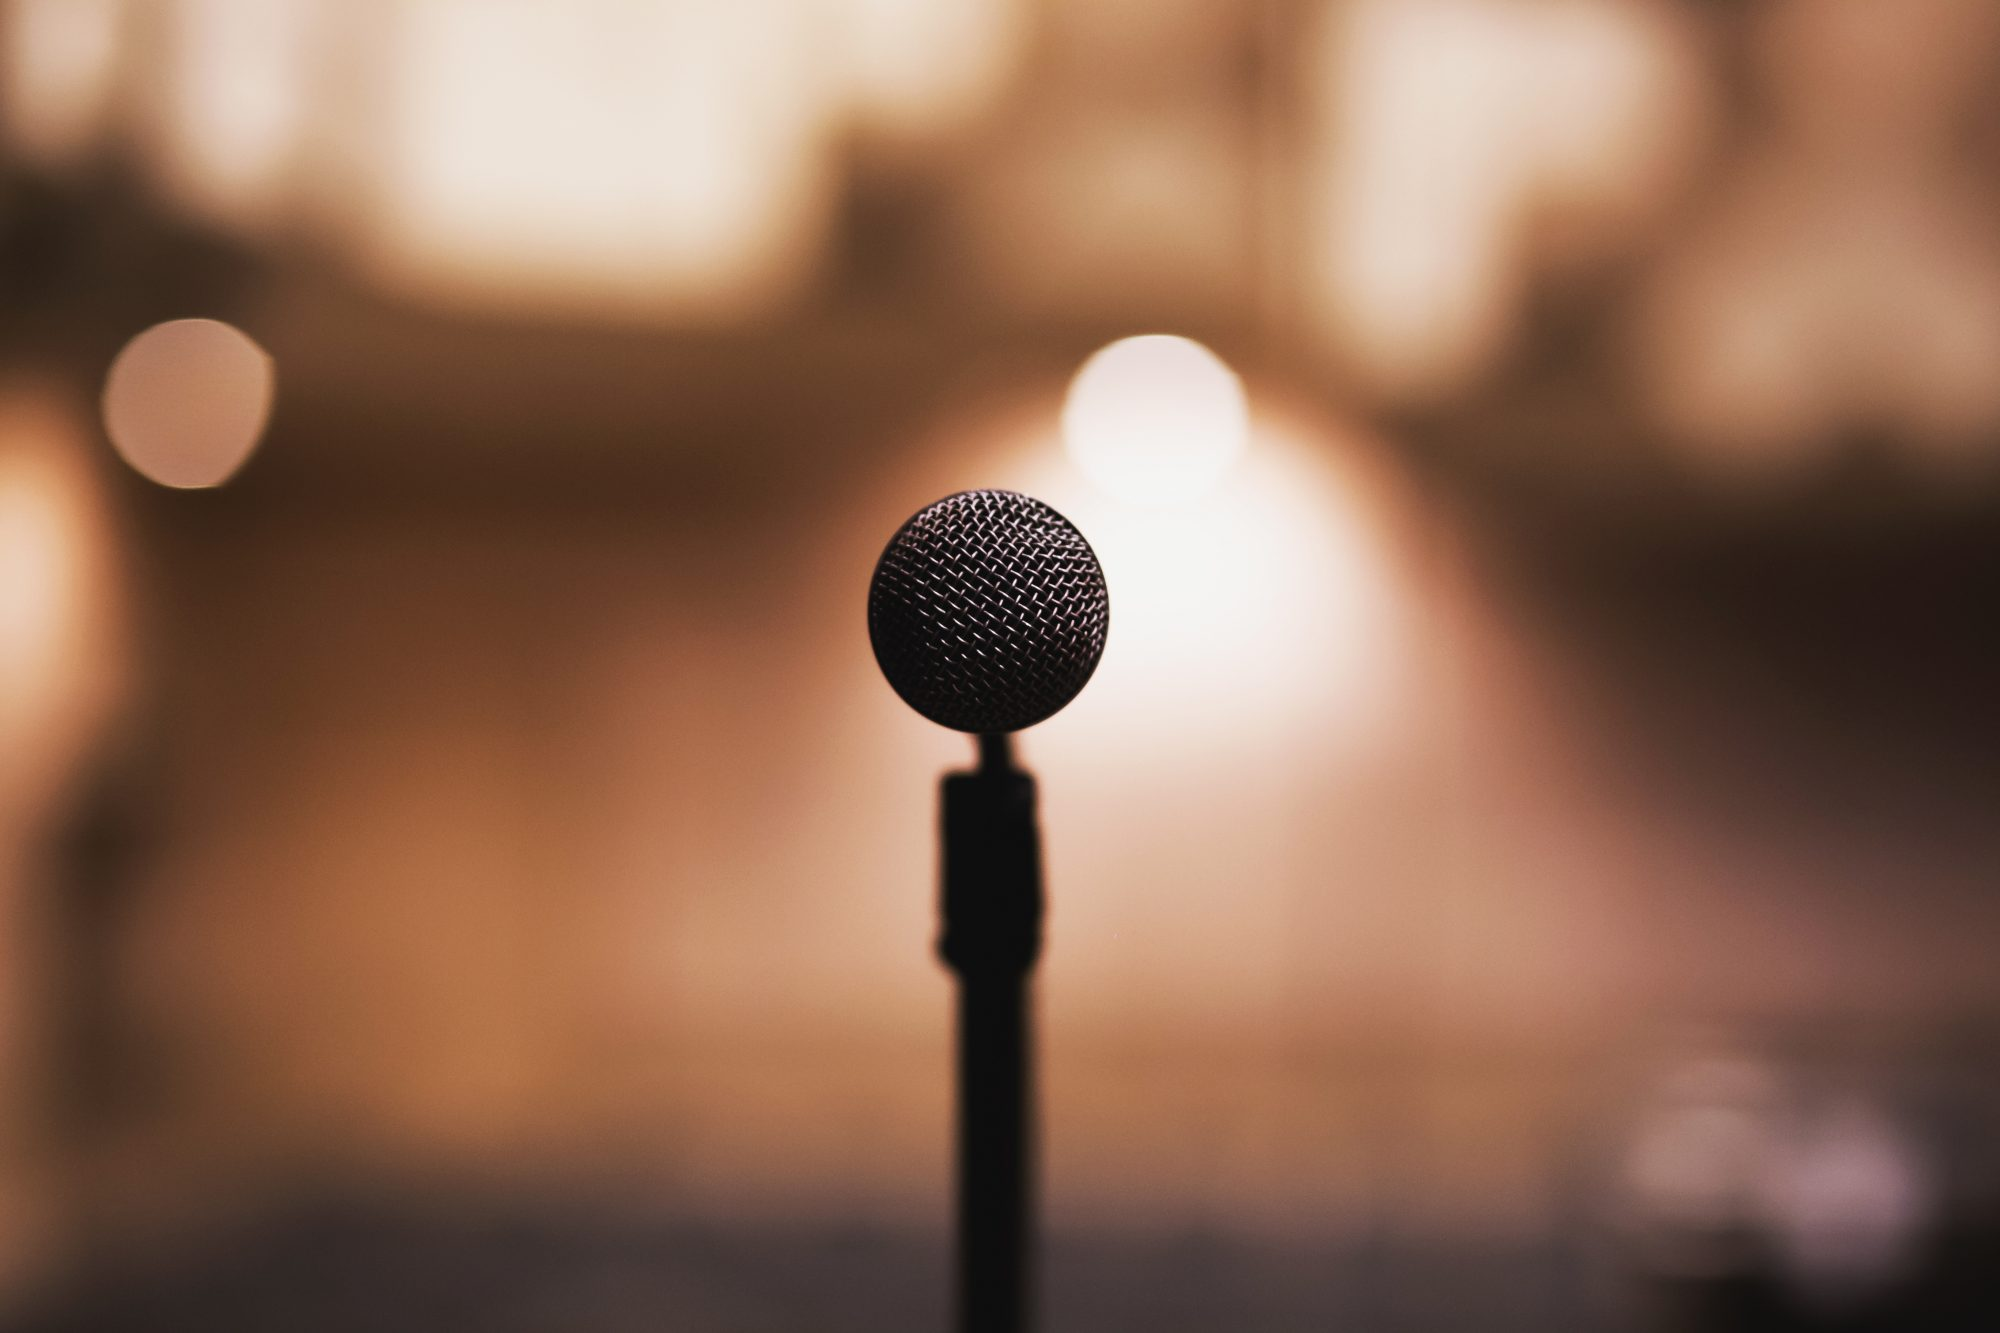 Freestanding black vocal recorder standing on a stage